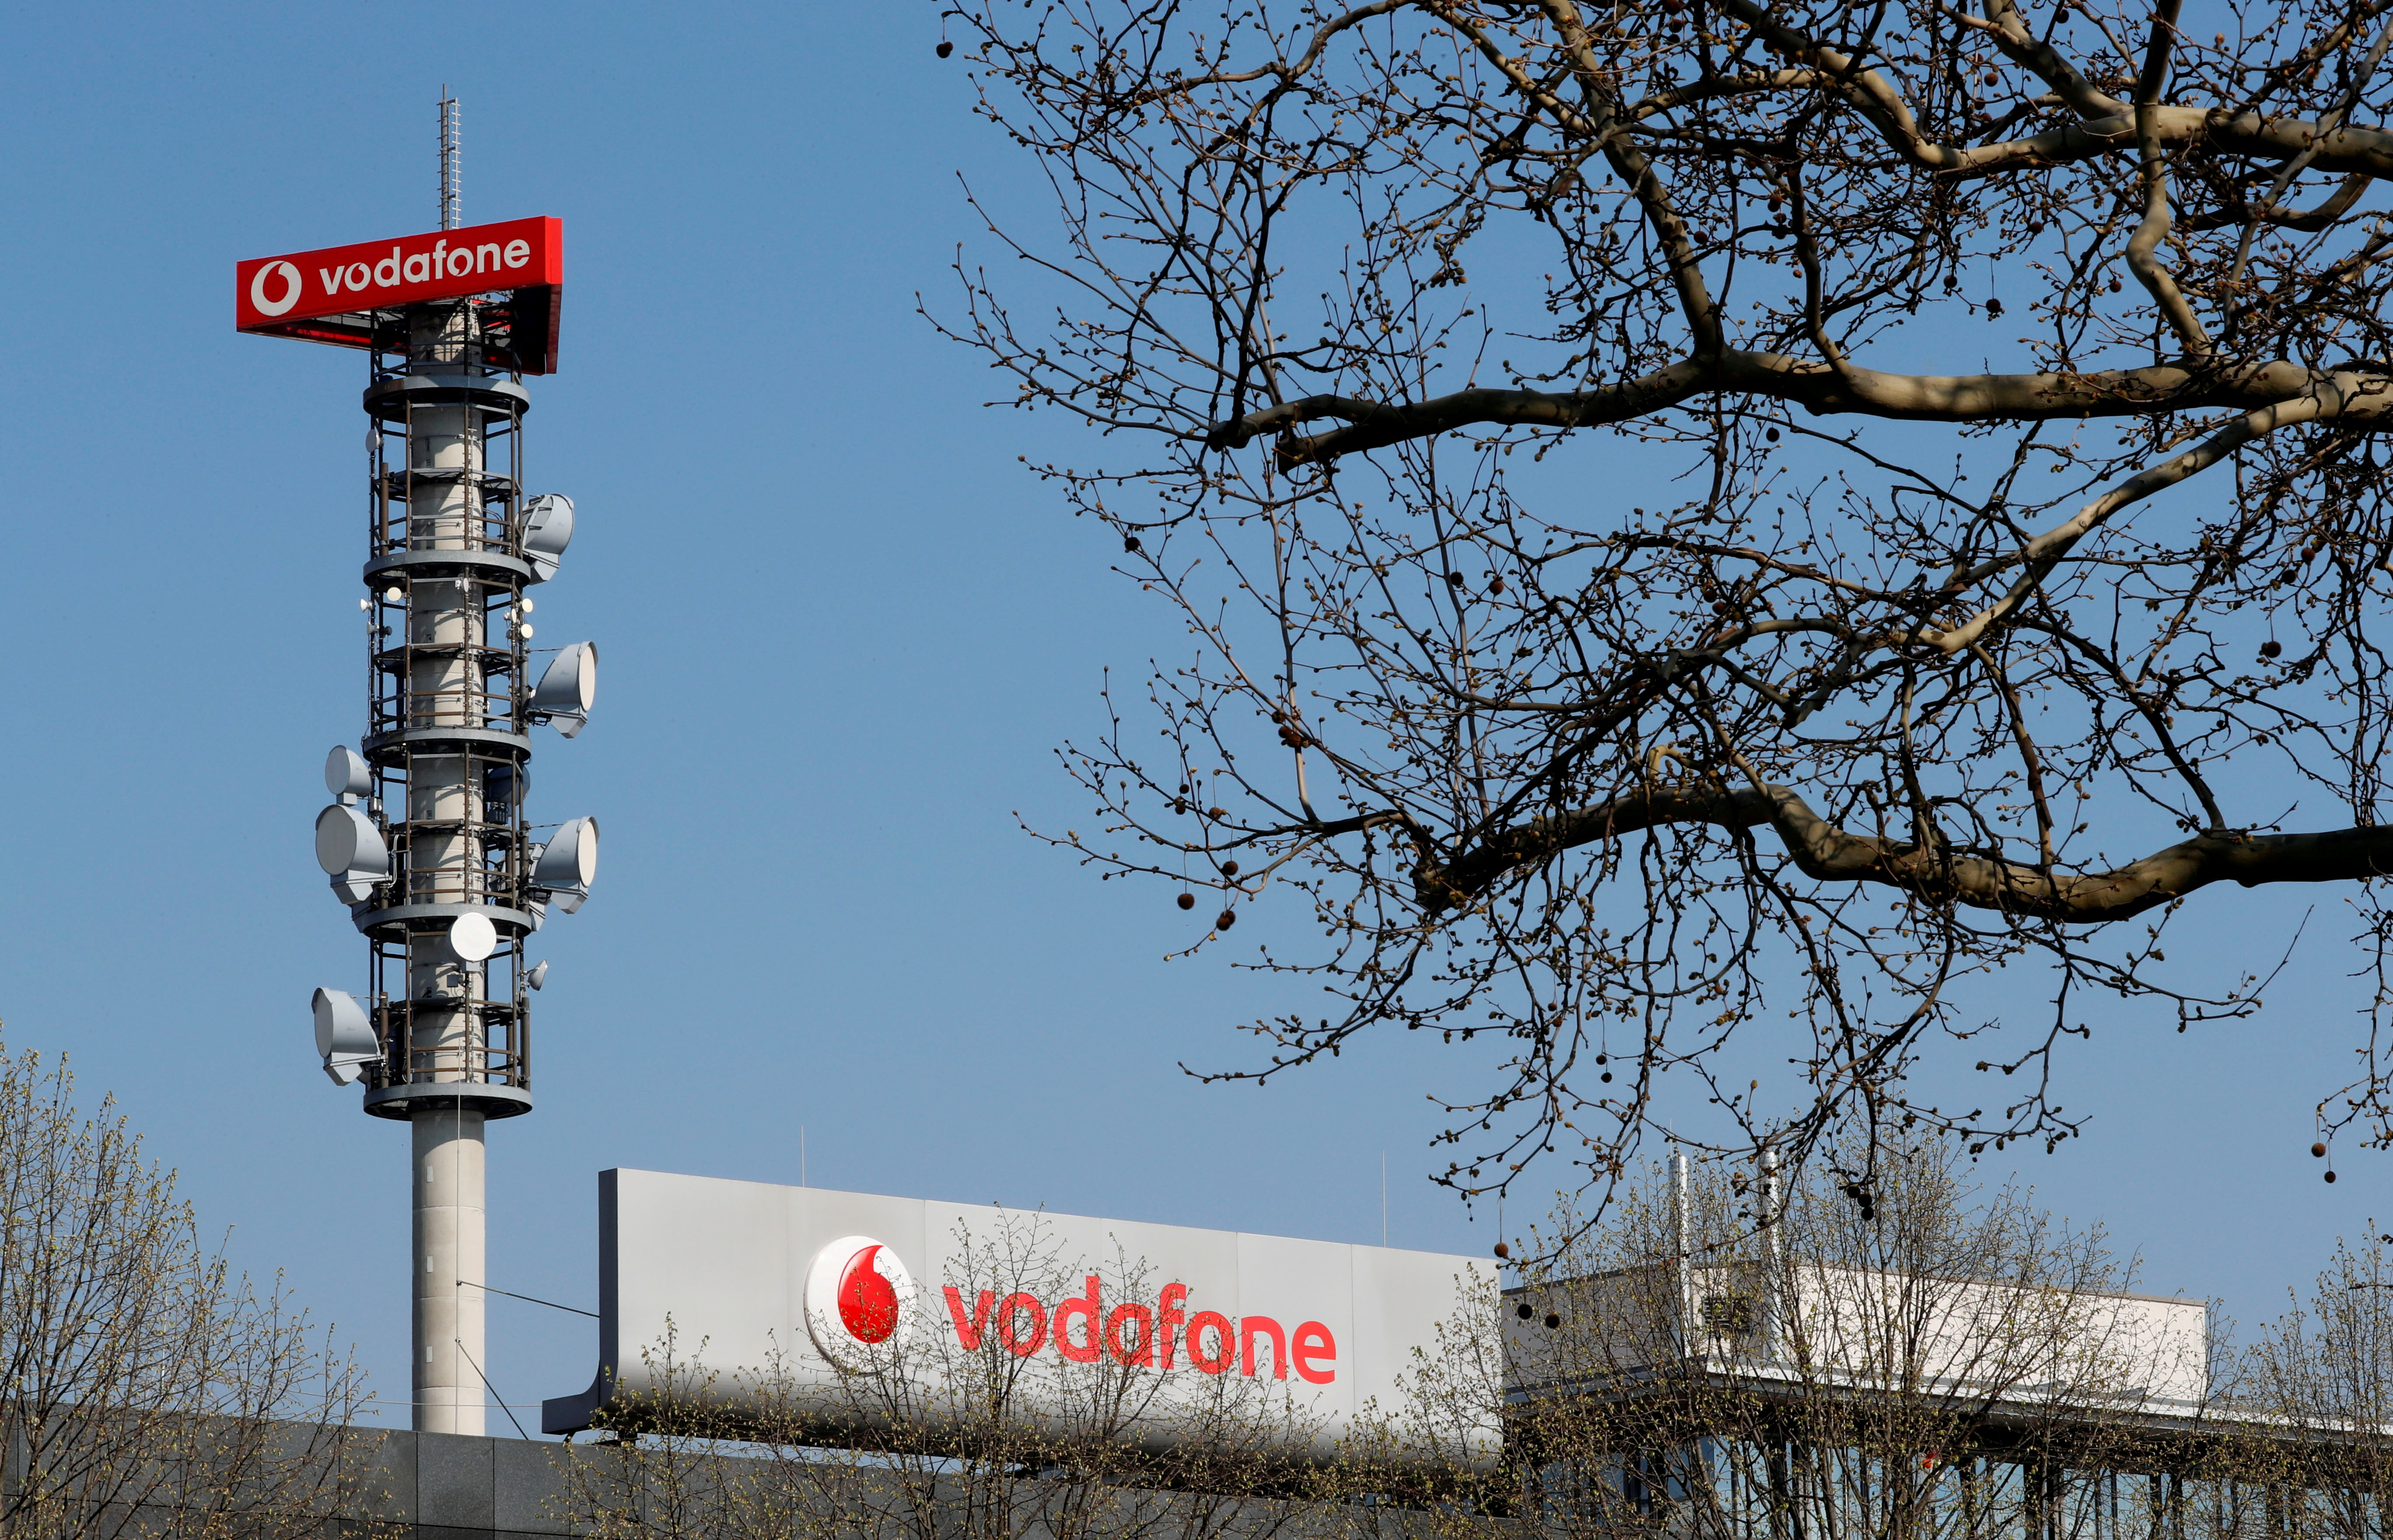 India in a quagmire by challenging the court order favouring Vodafone